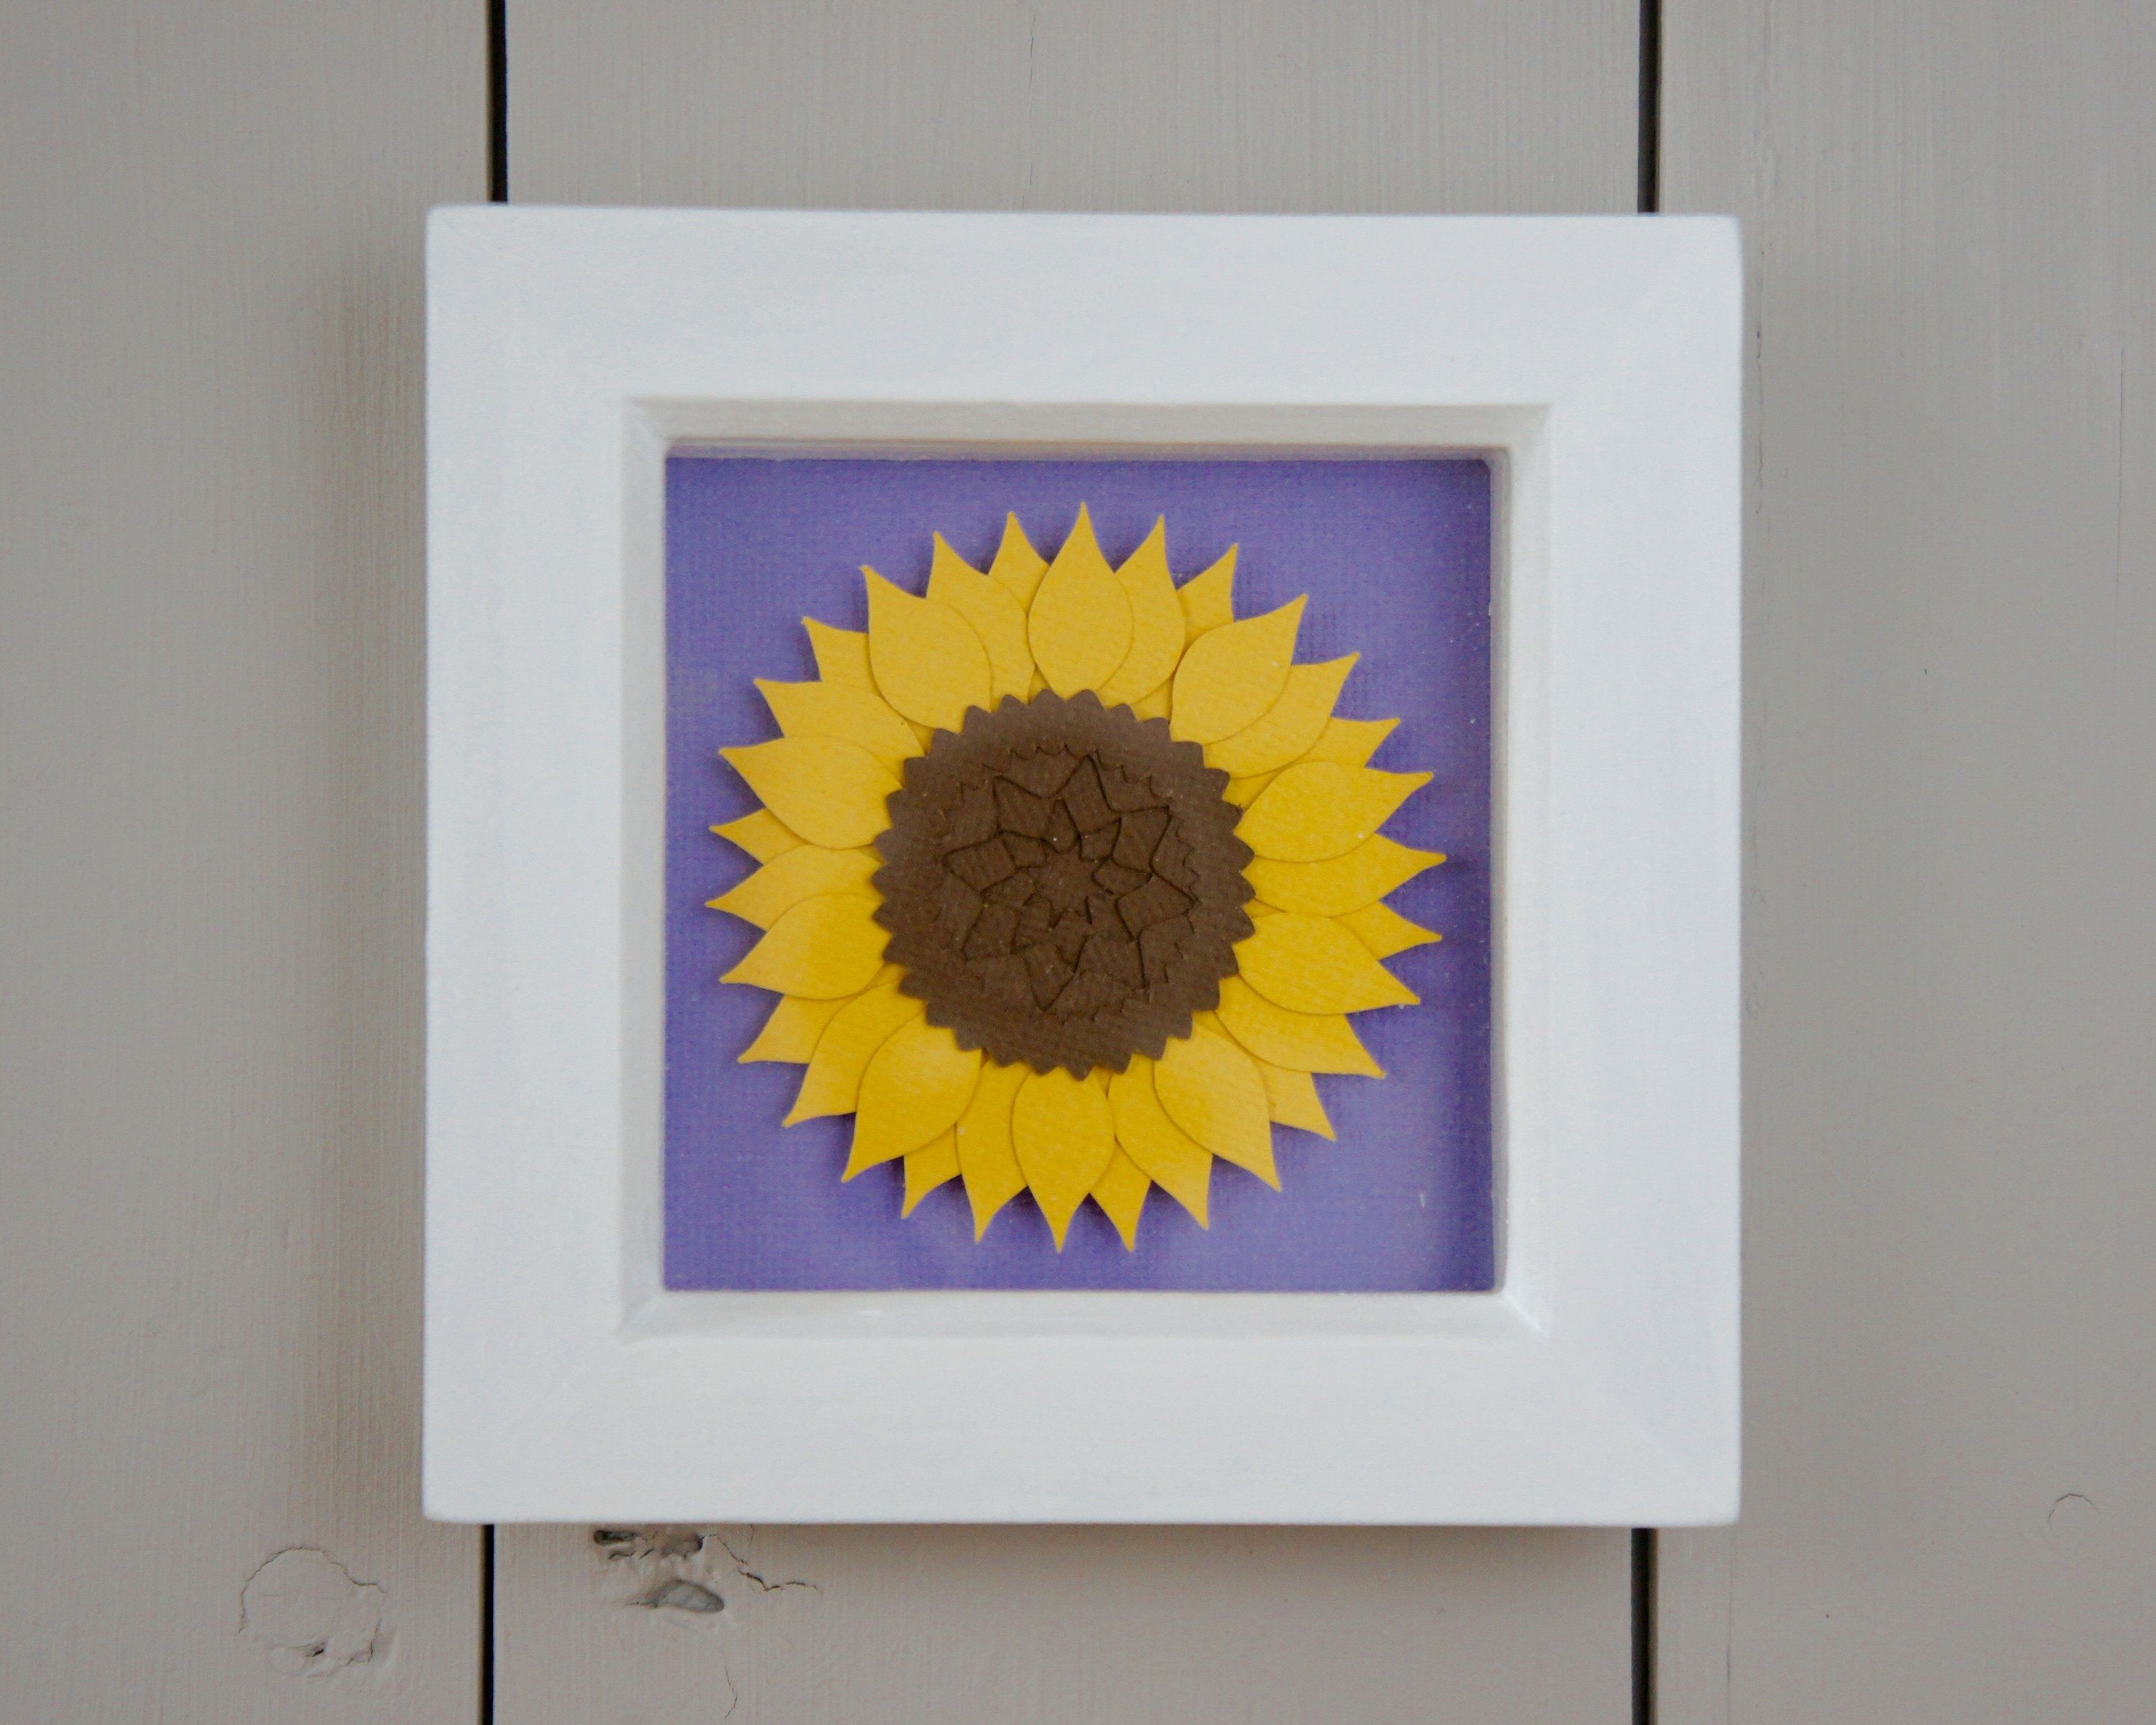 Sunflower Papercut In White Frame, Small Framed Layered Papercut, Bright